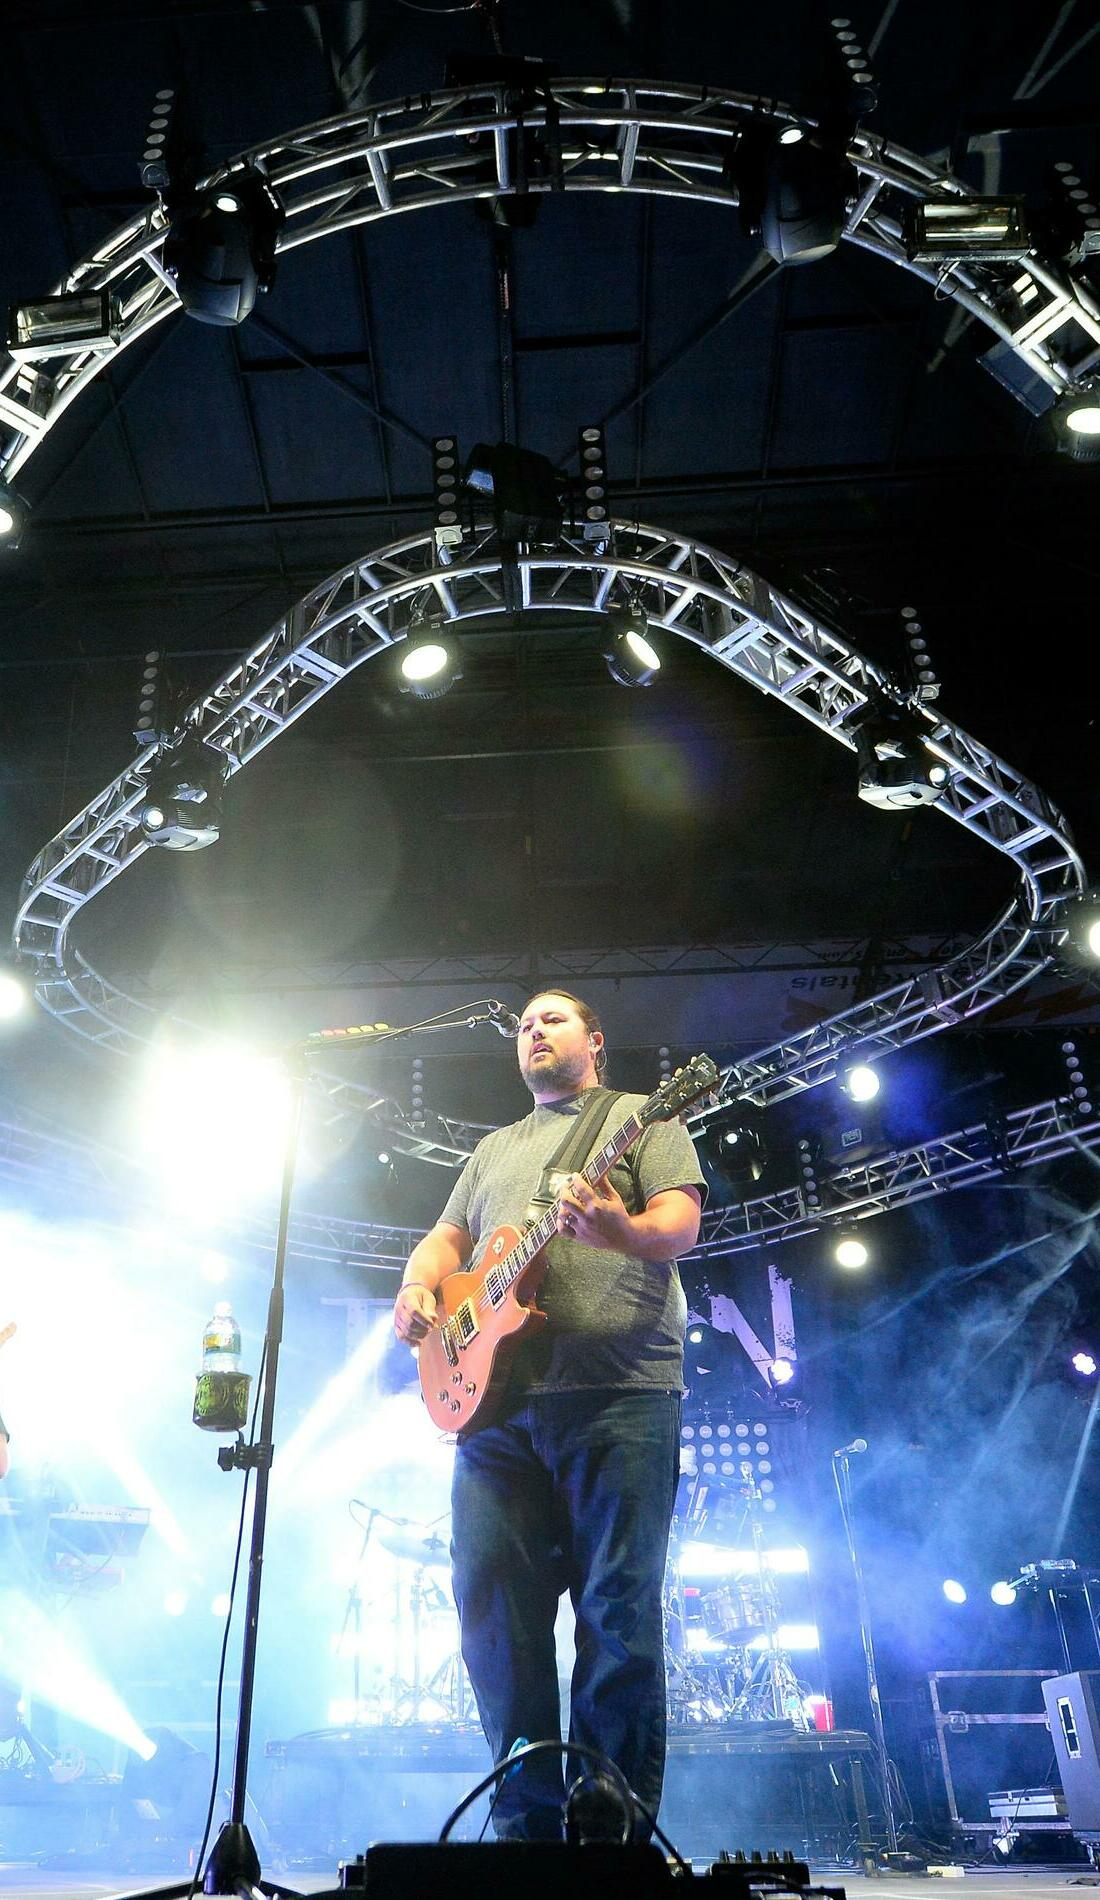 A Iration live event